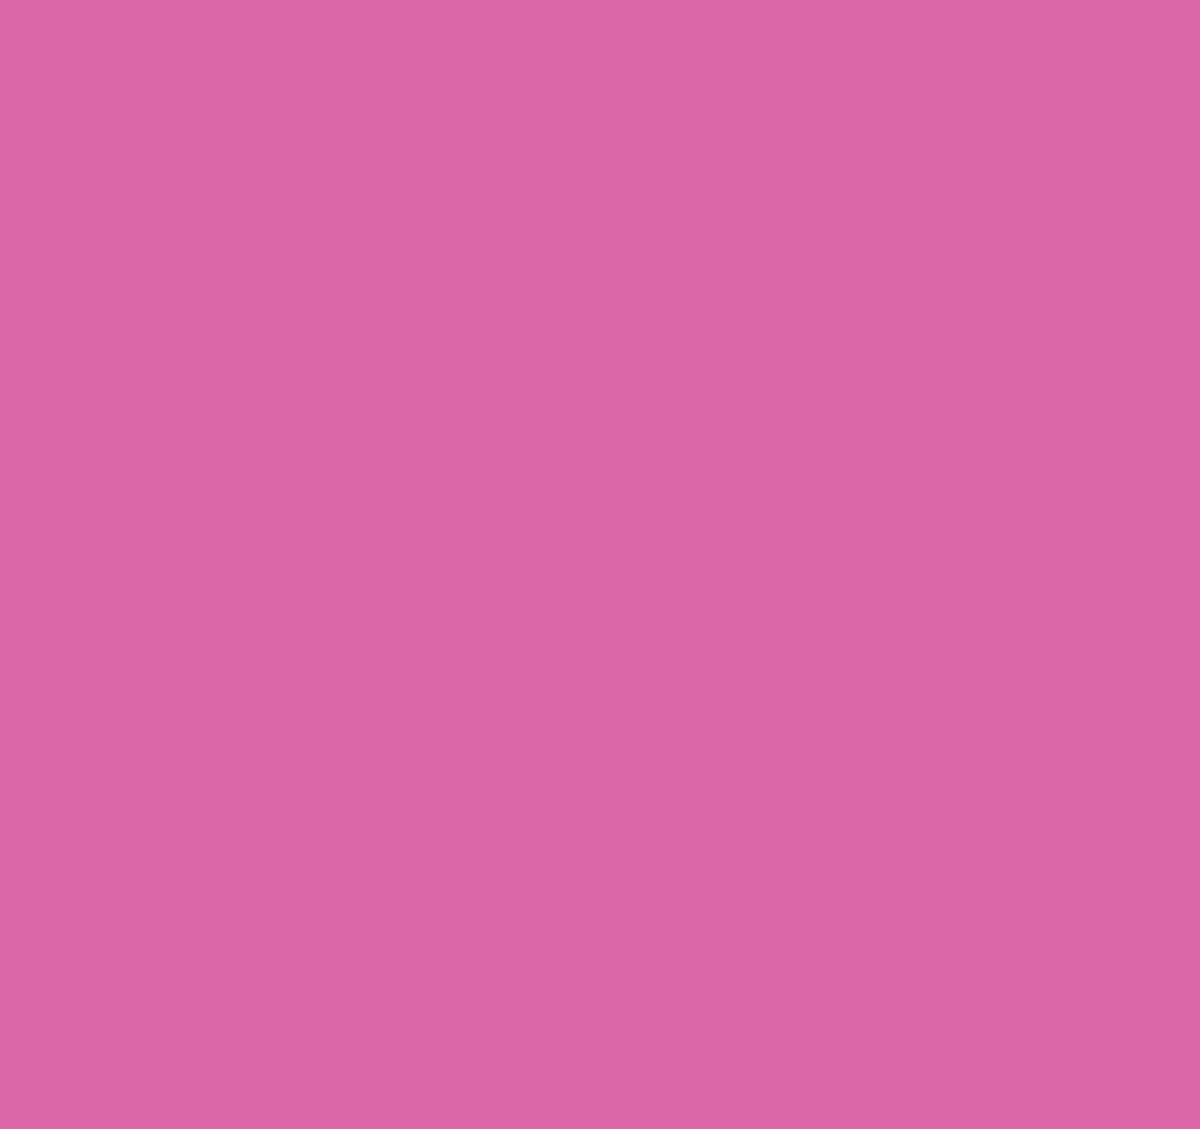 Recycle_pink_2_1200px.jpg